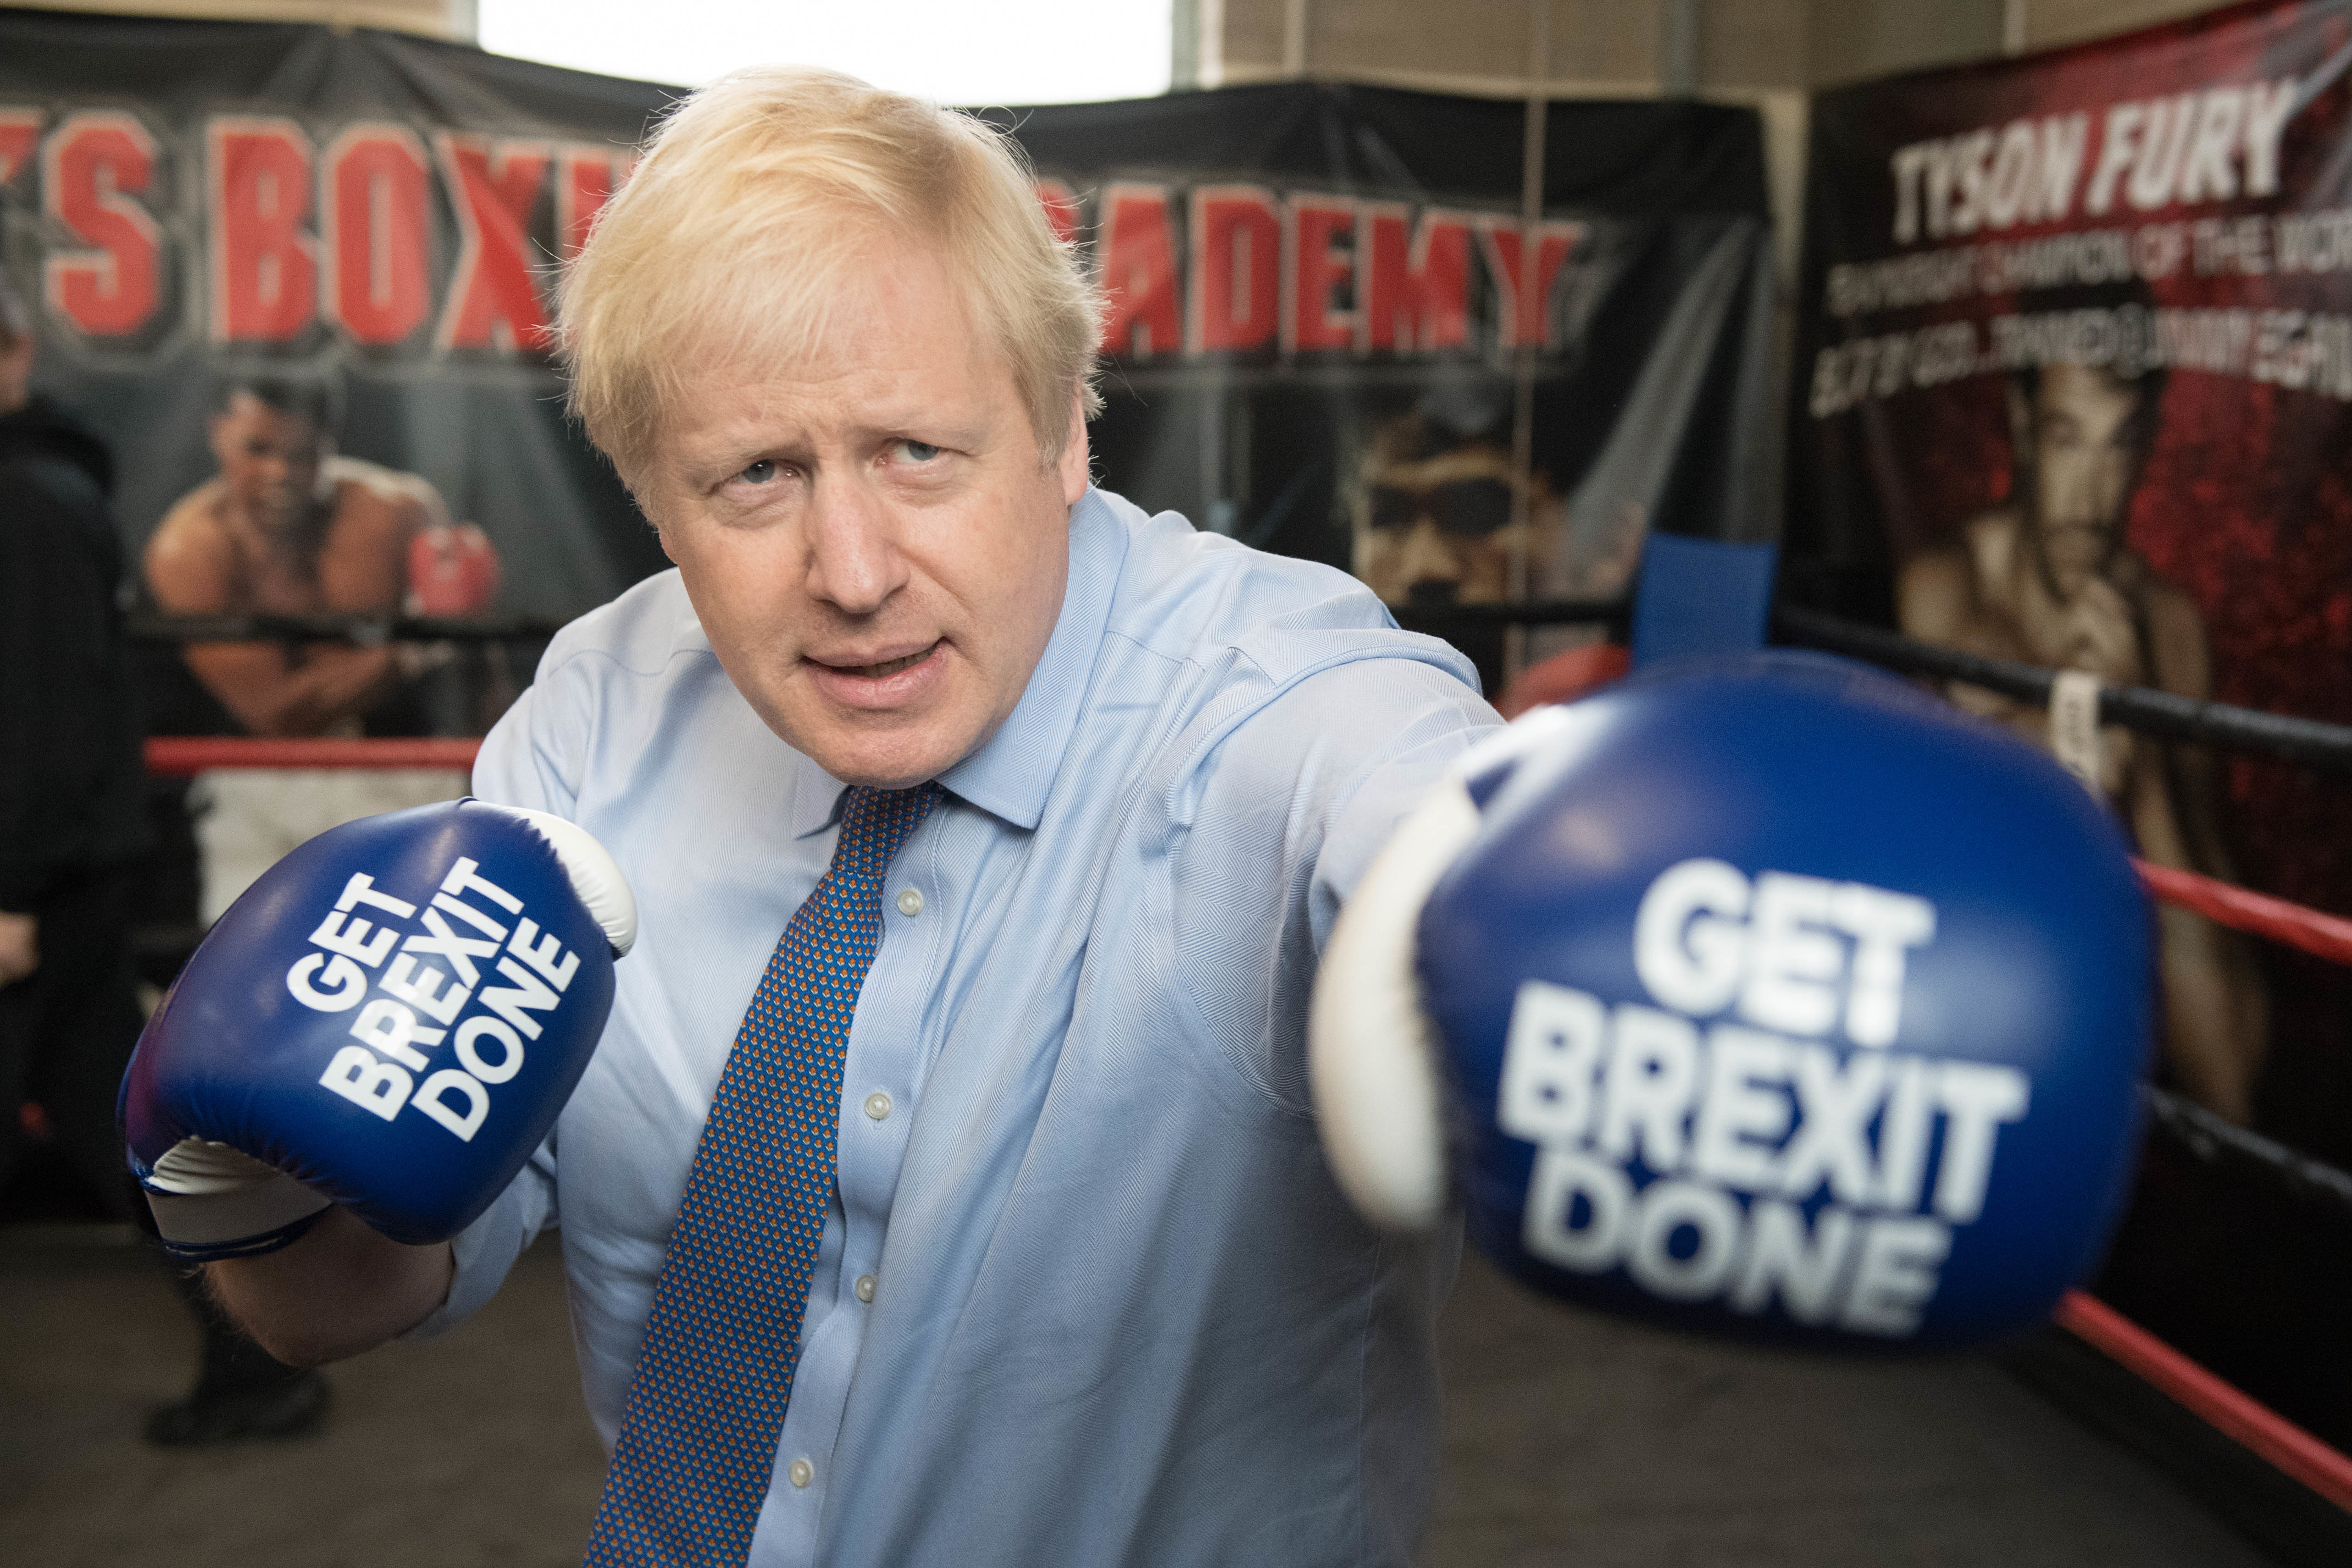 Prime Minister Boris Johnson during a visit to Jimmy Egan's Boxing Academy at Wythenshawe, while on the campaign trail.